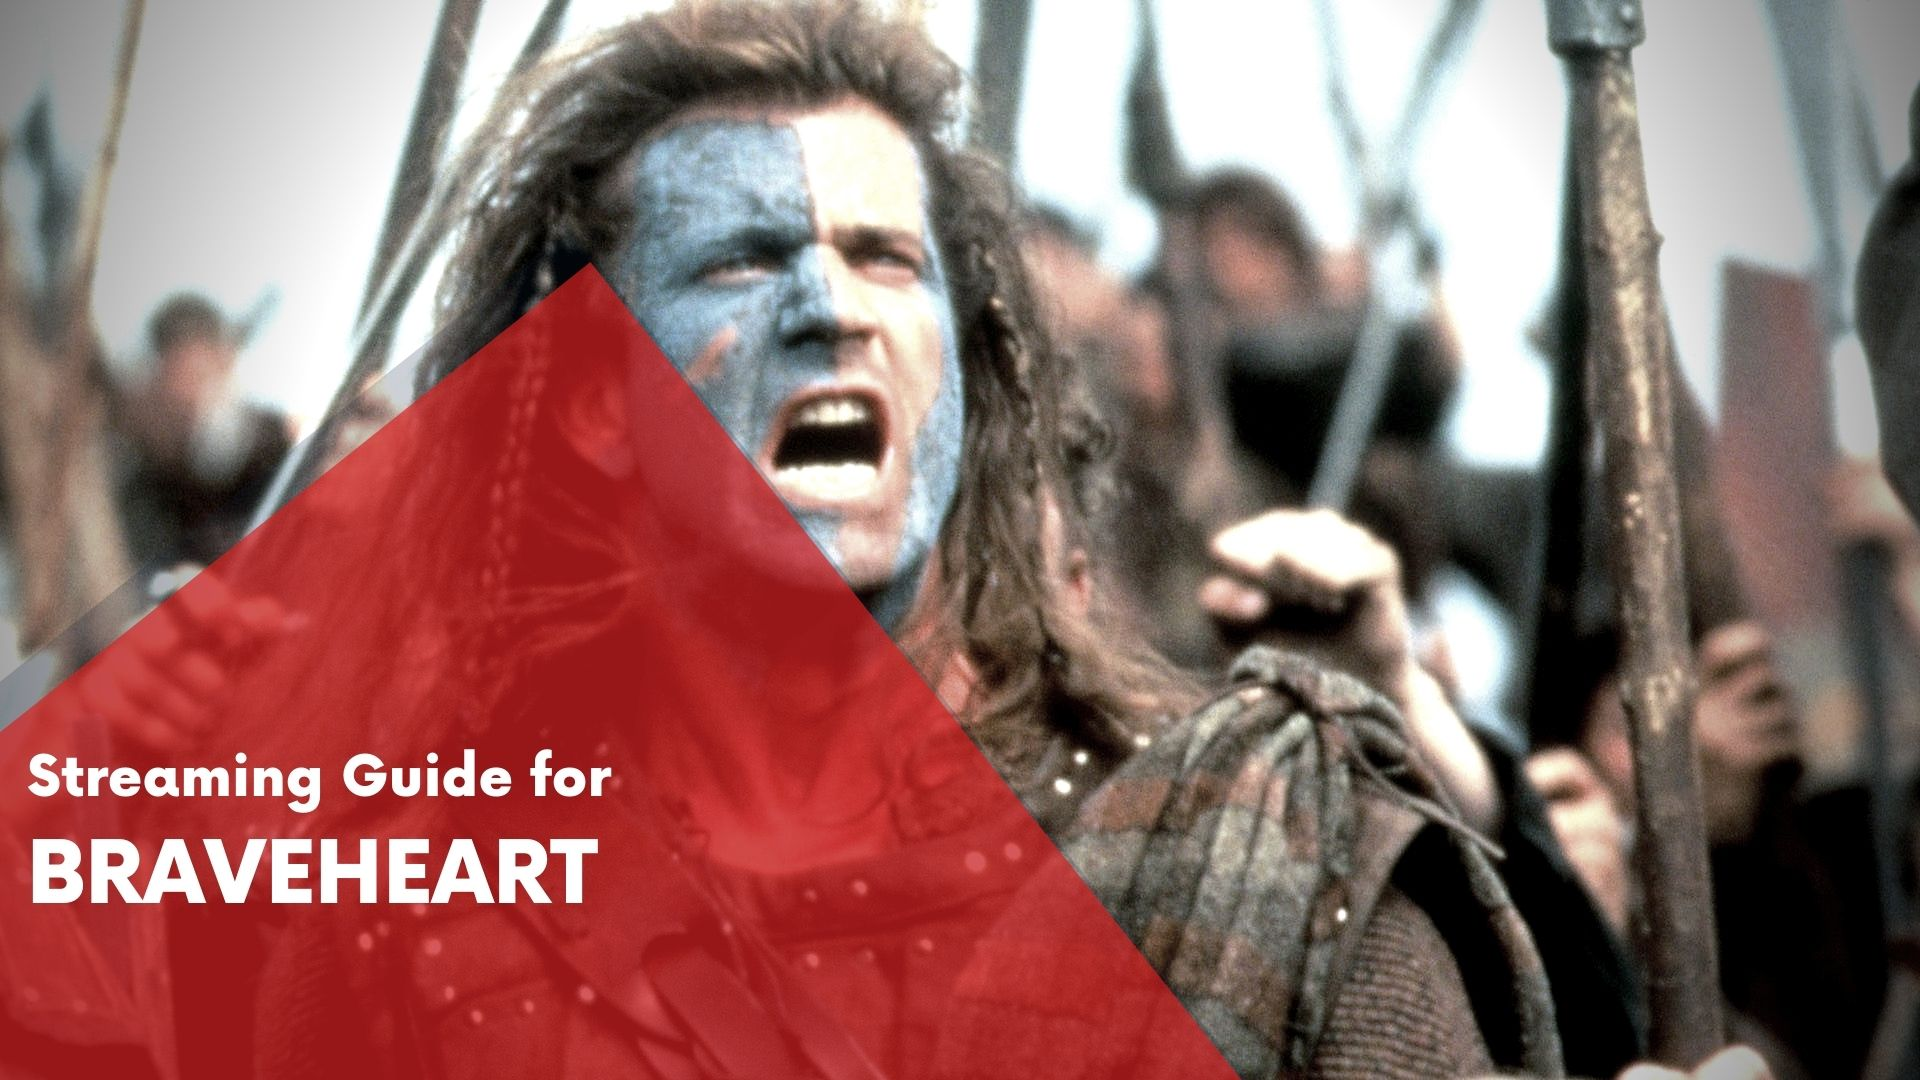 Answering if Braveheart can be watched online on Hulu